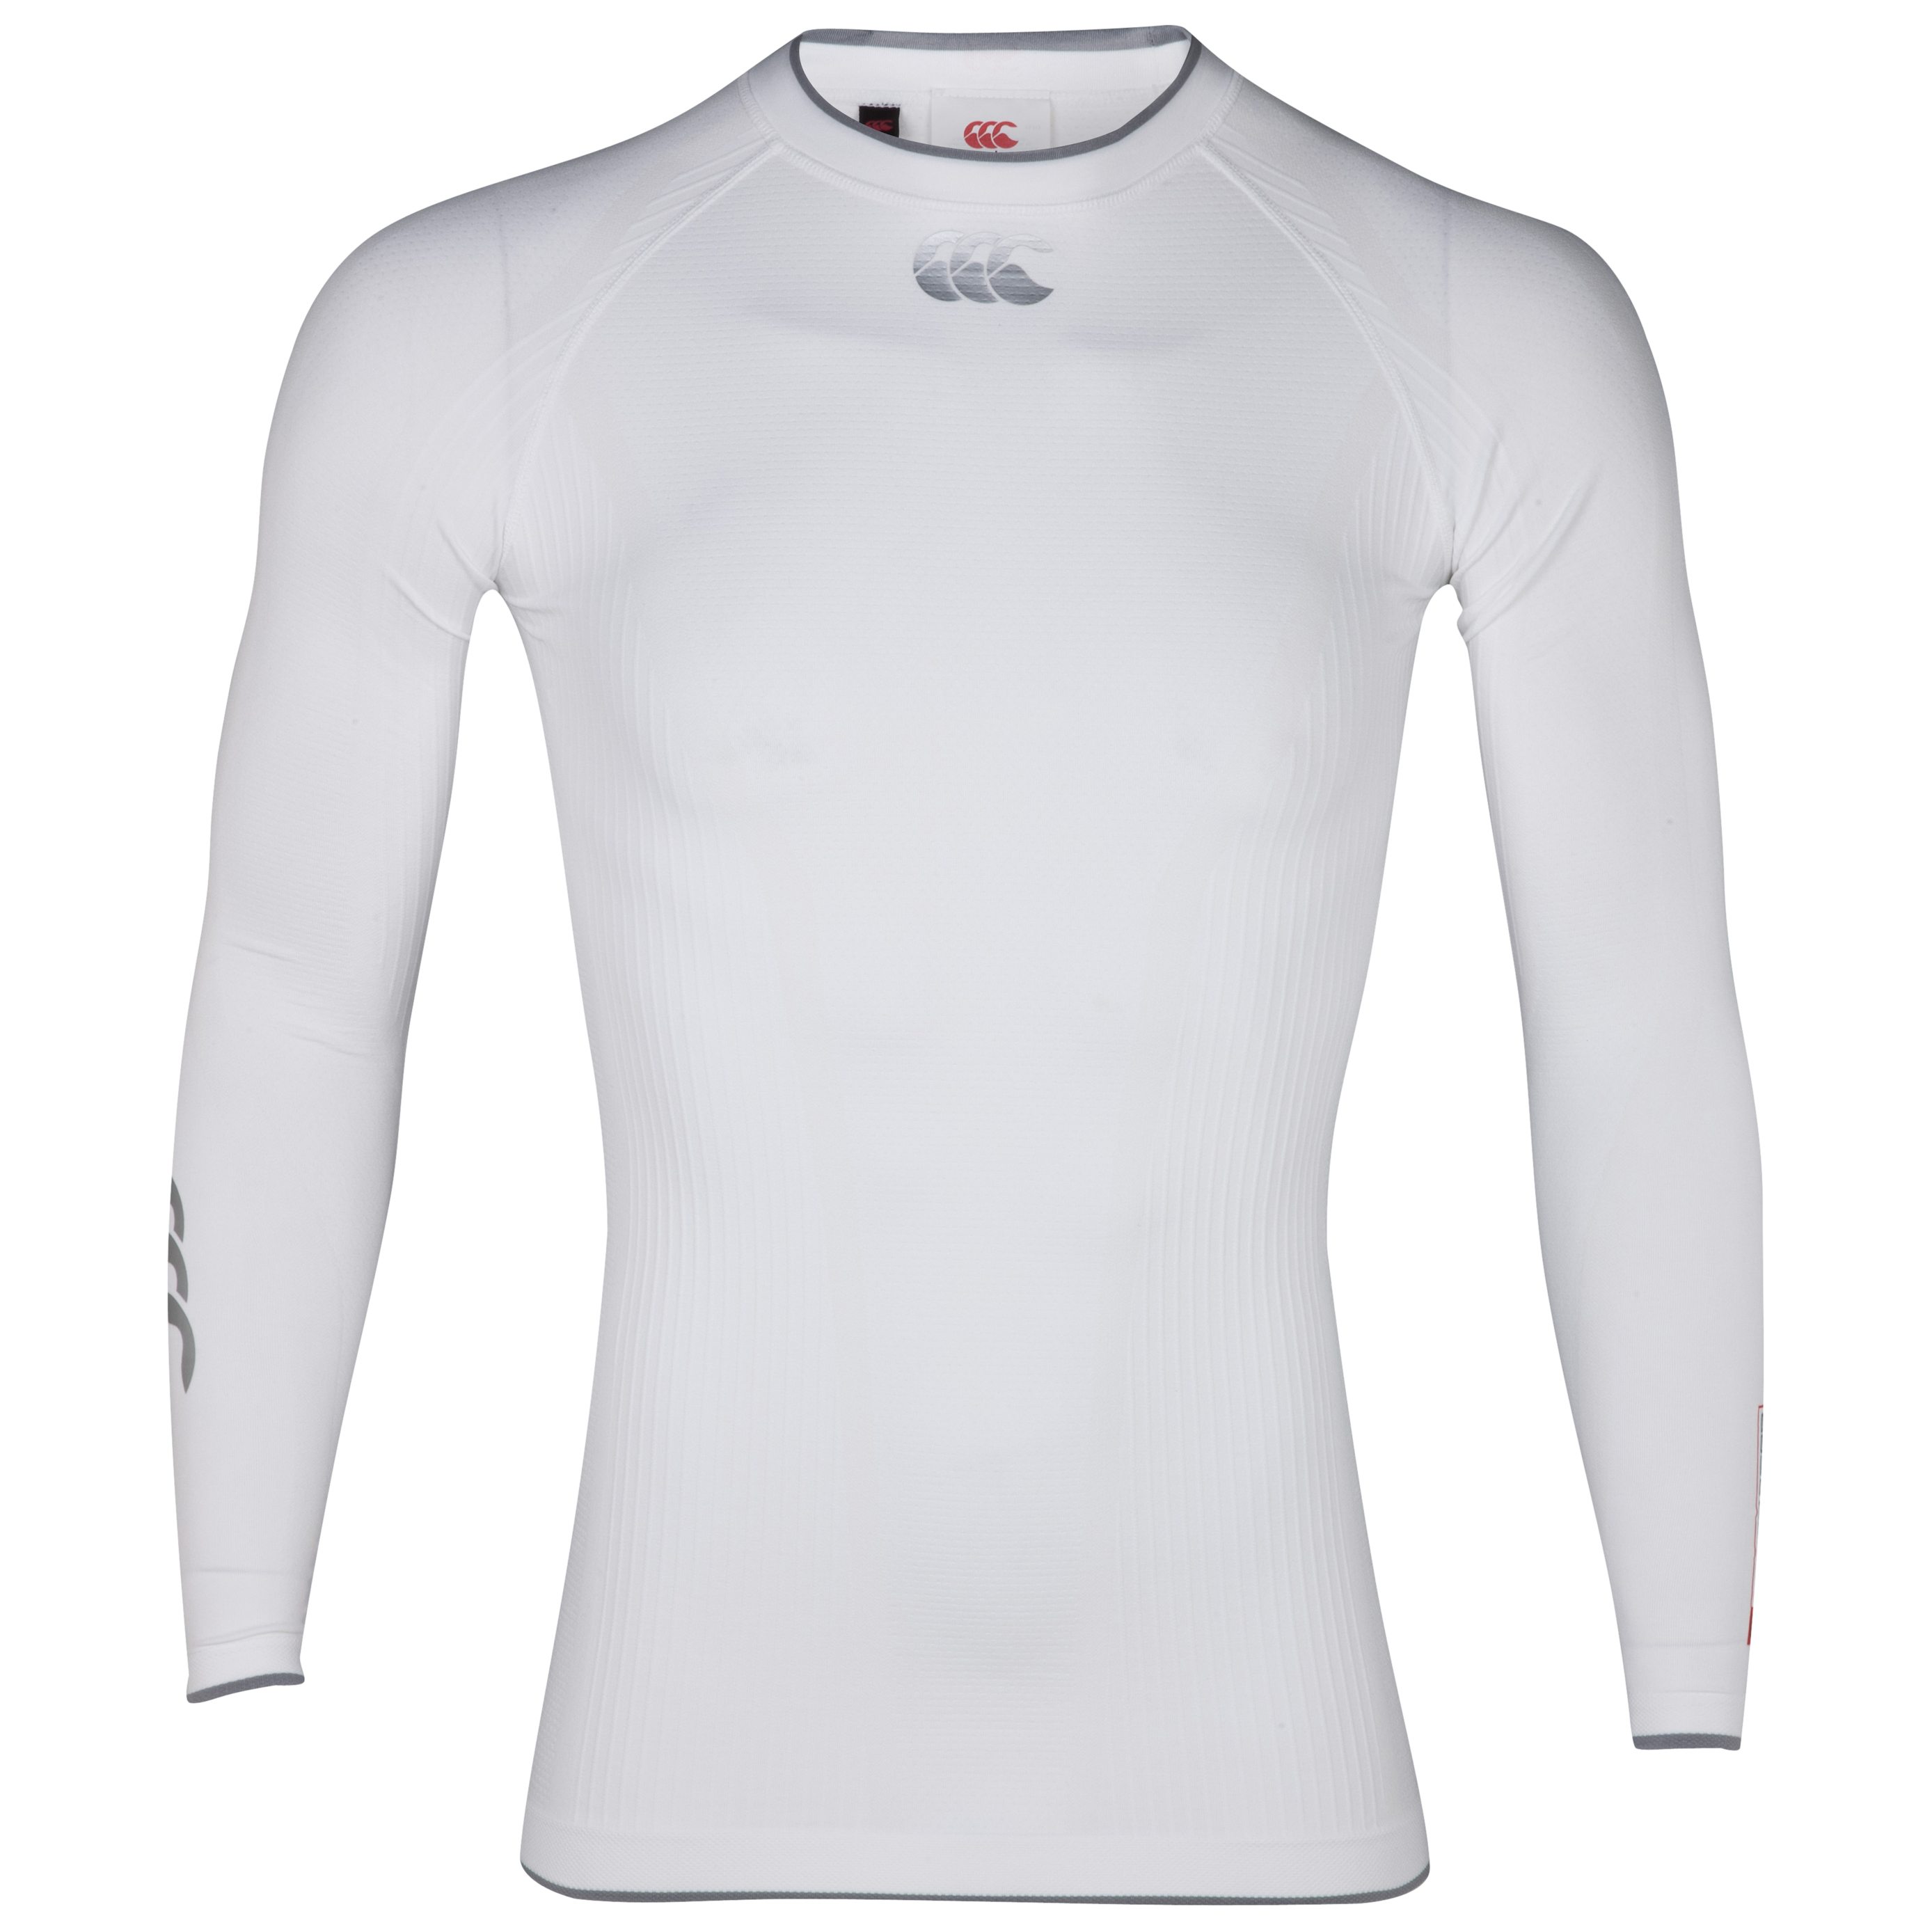 Canterbury iD Baselayer Top - Long Sleeve - White/Black